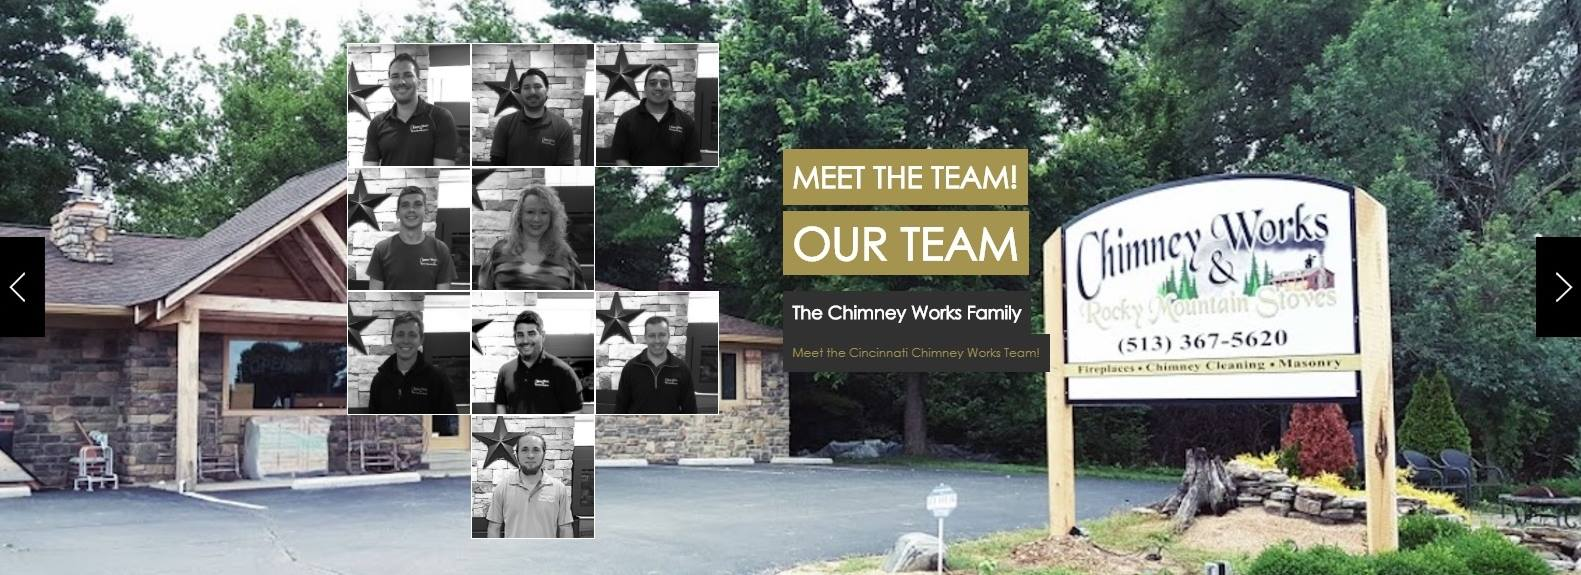 Our Team Cincinnati Chimney Works Amp Rocky Mountain Stoves